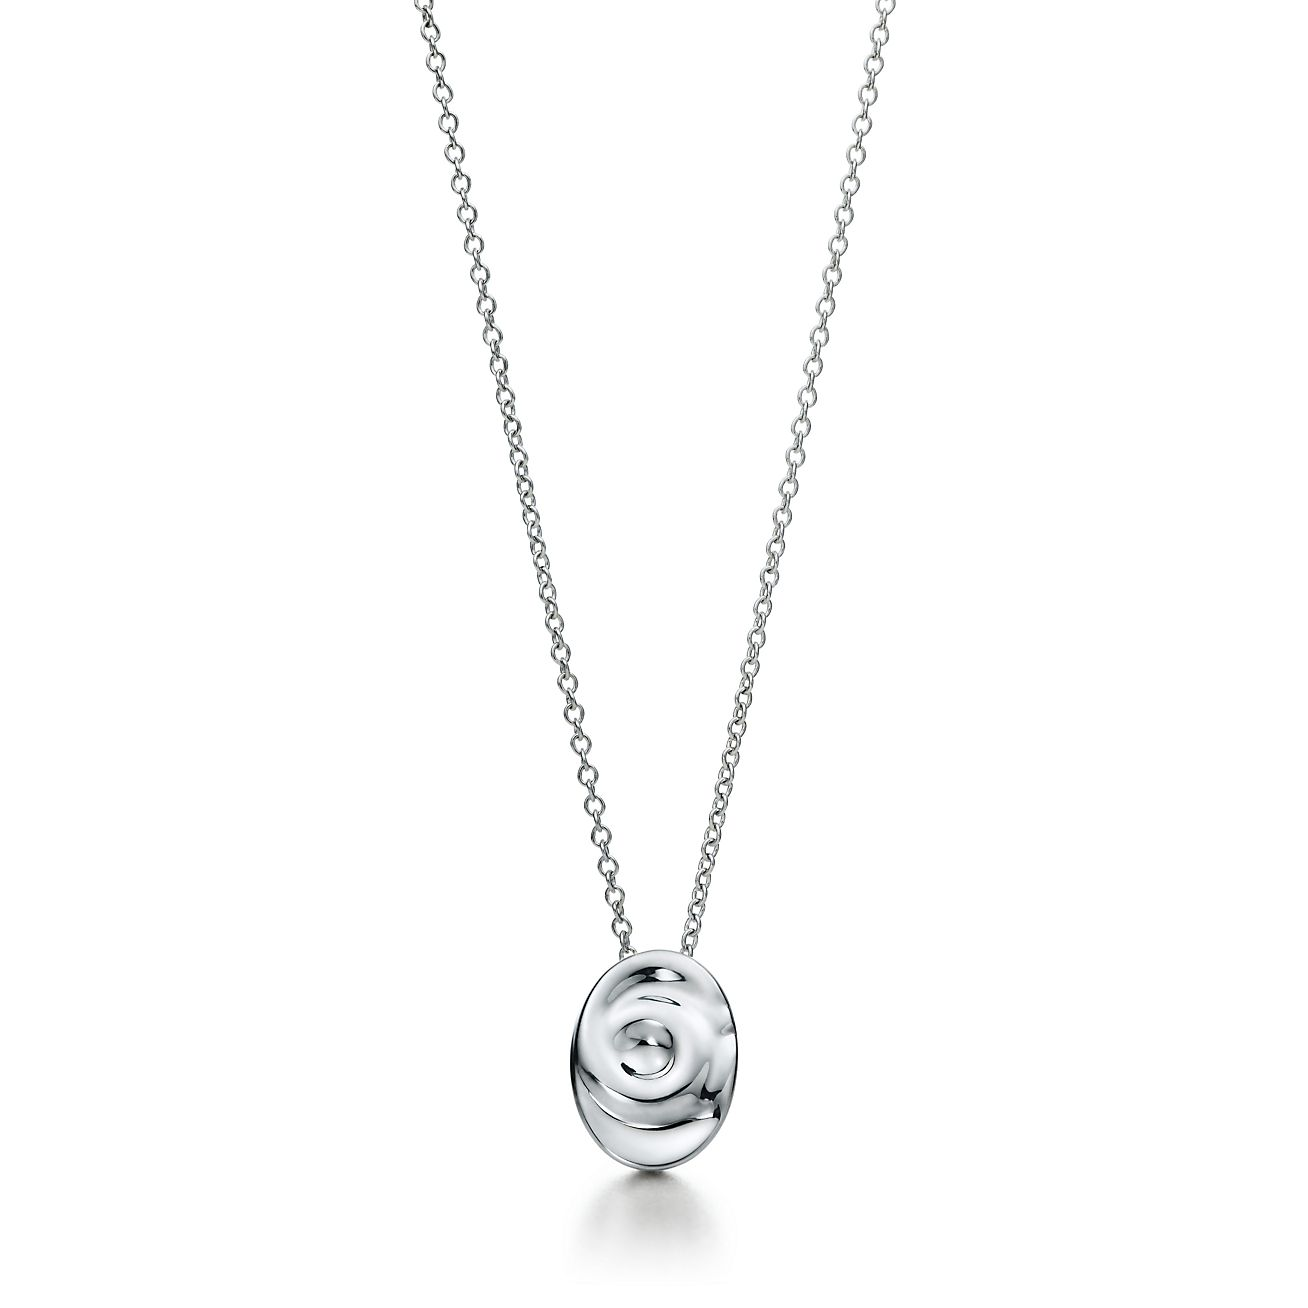 gemini grande products may mar silver disc pendant gold jun apr rose aries necklace zodiac